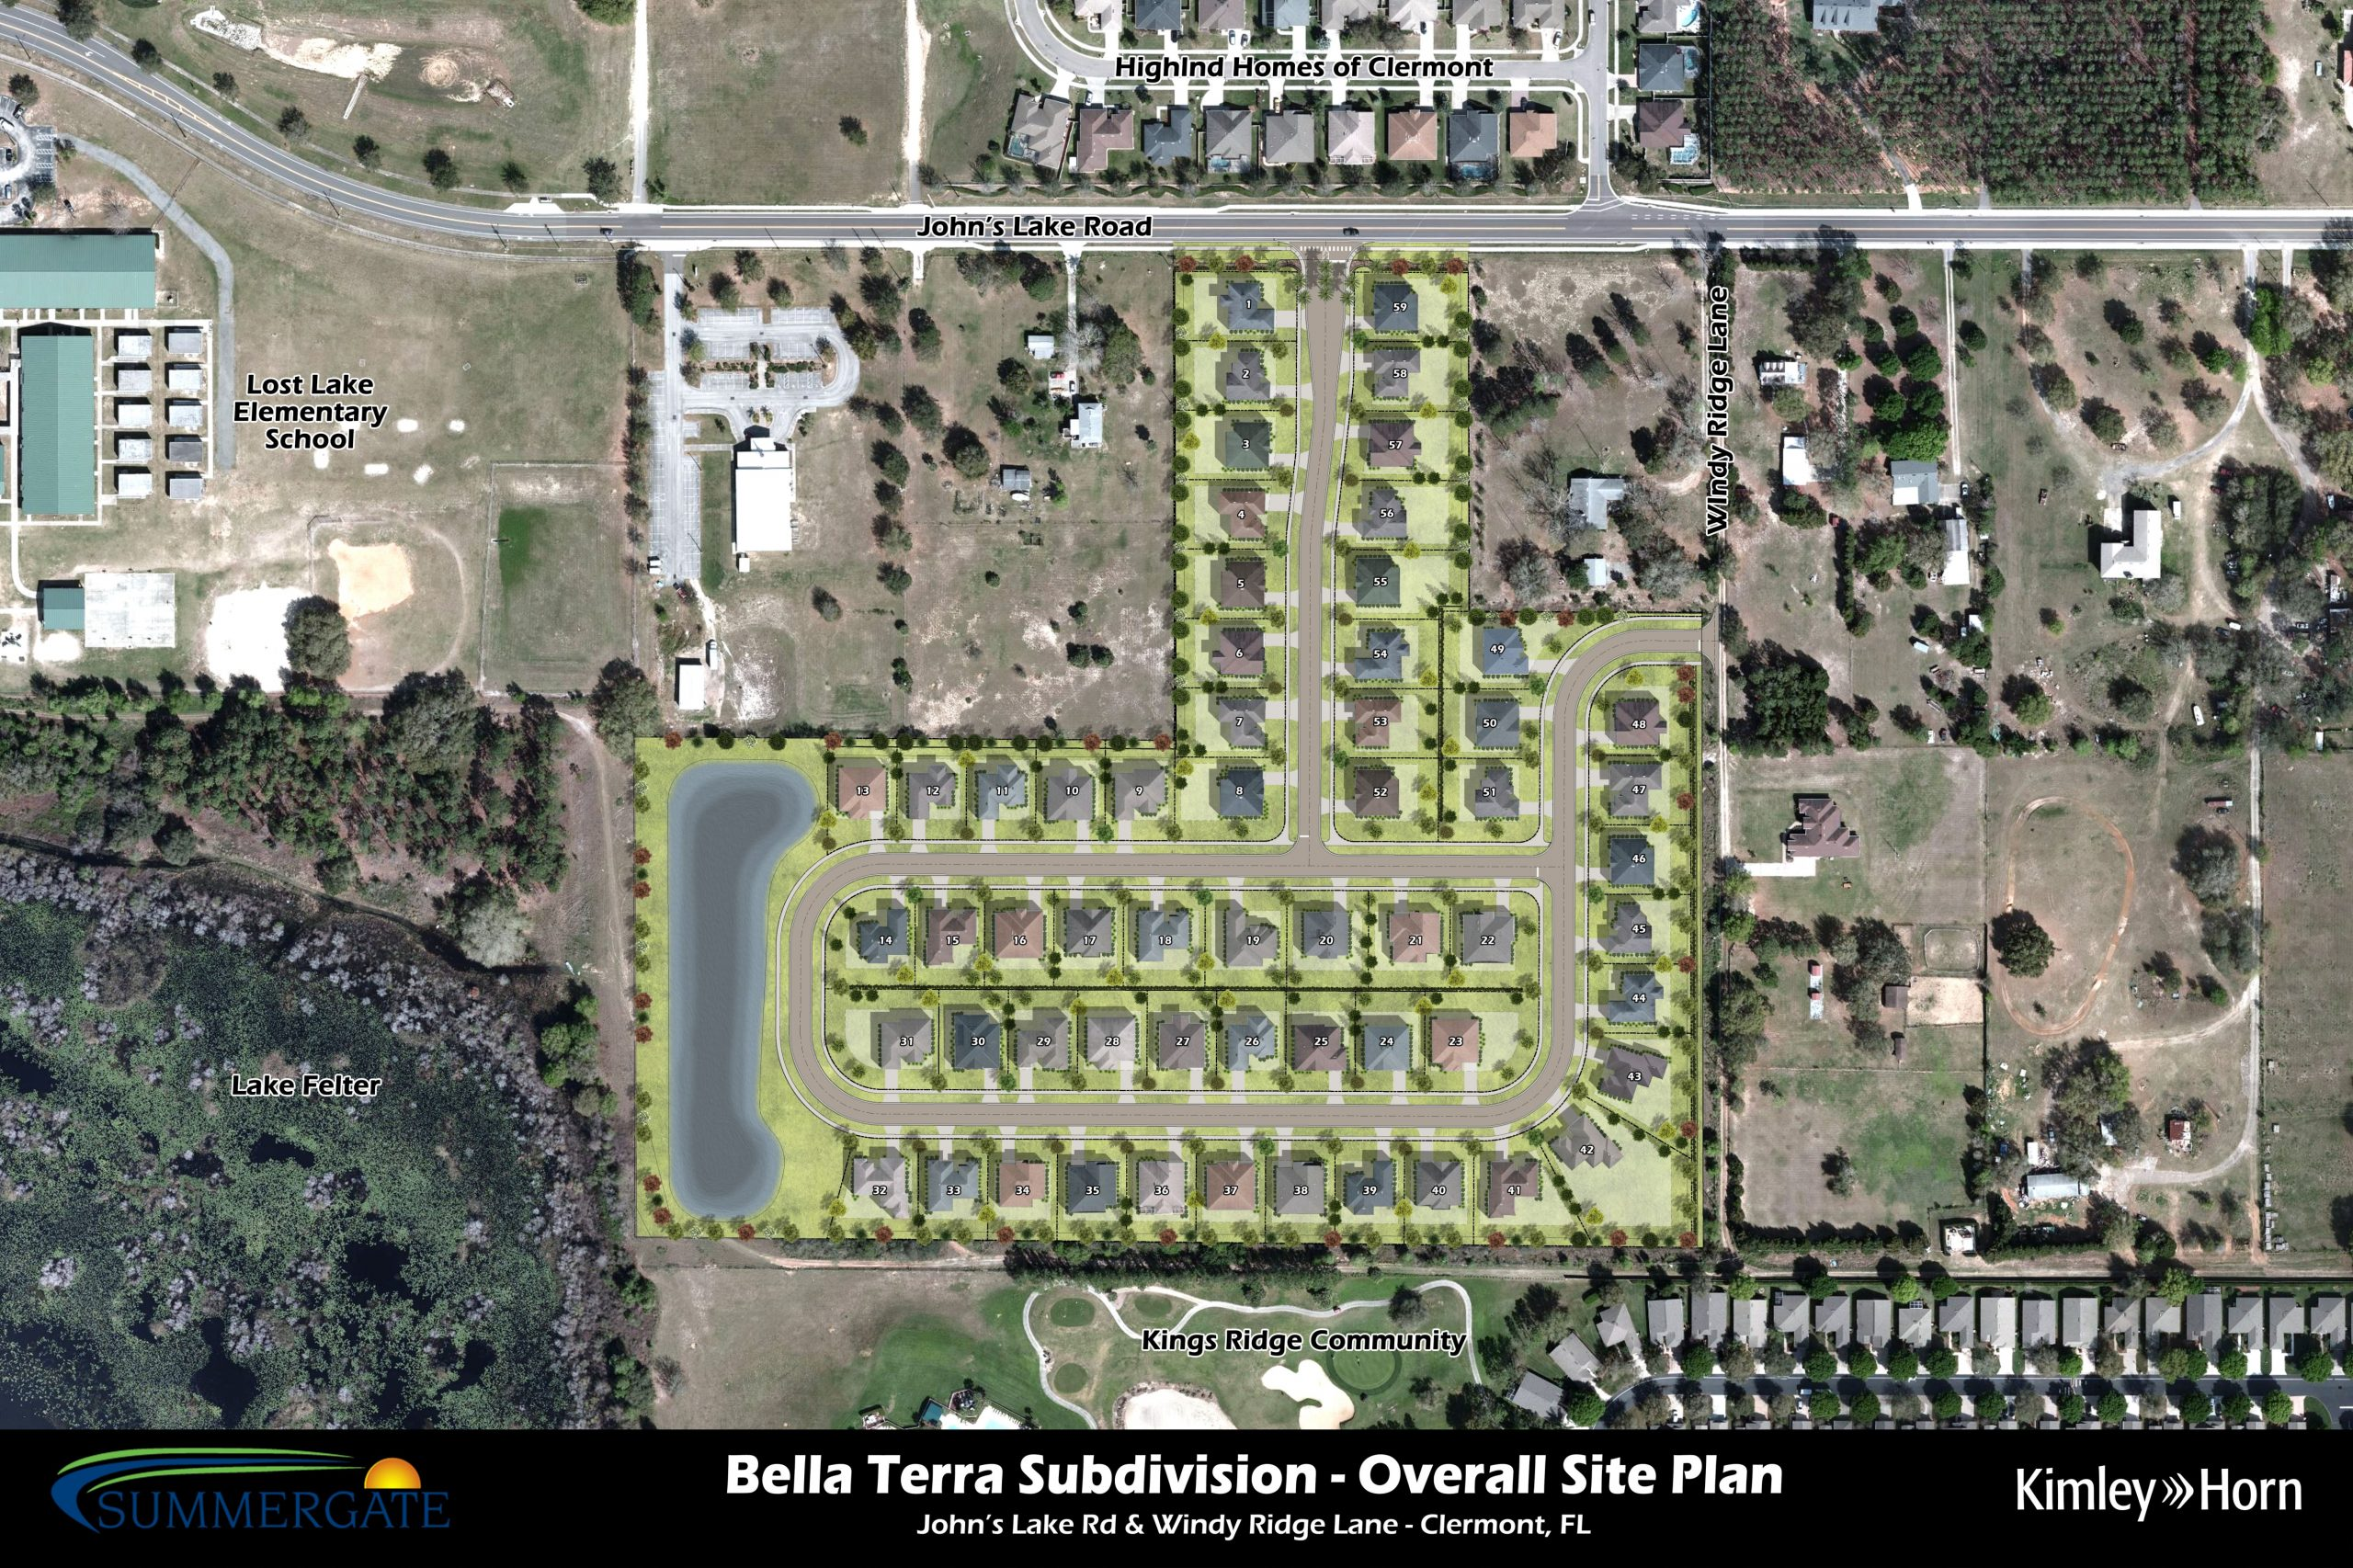 Bella Terra Overall Site Plan V2 Aerial Saturated